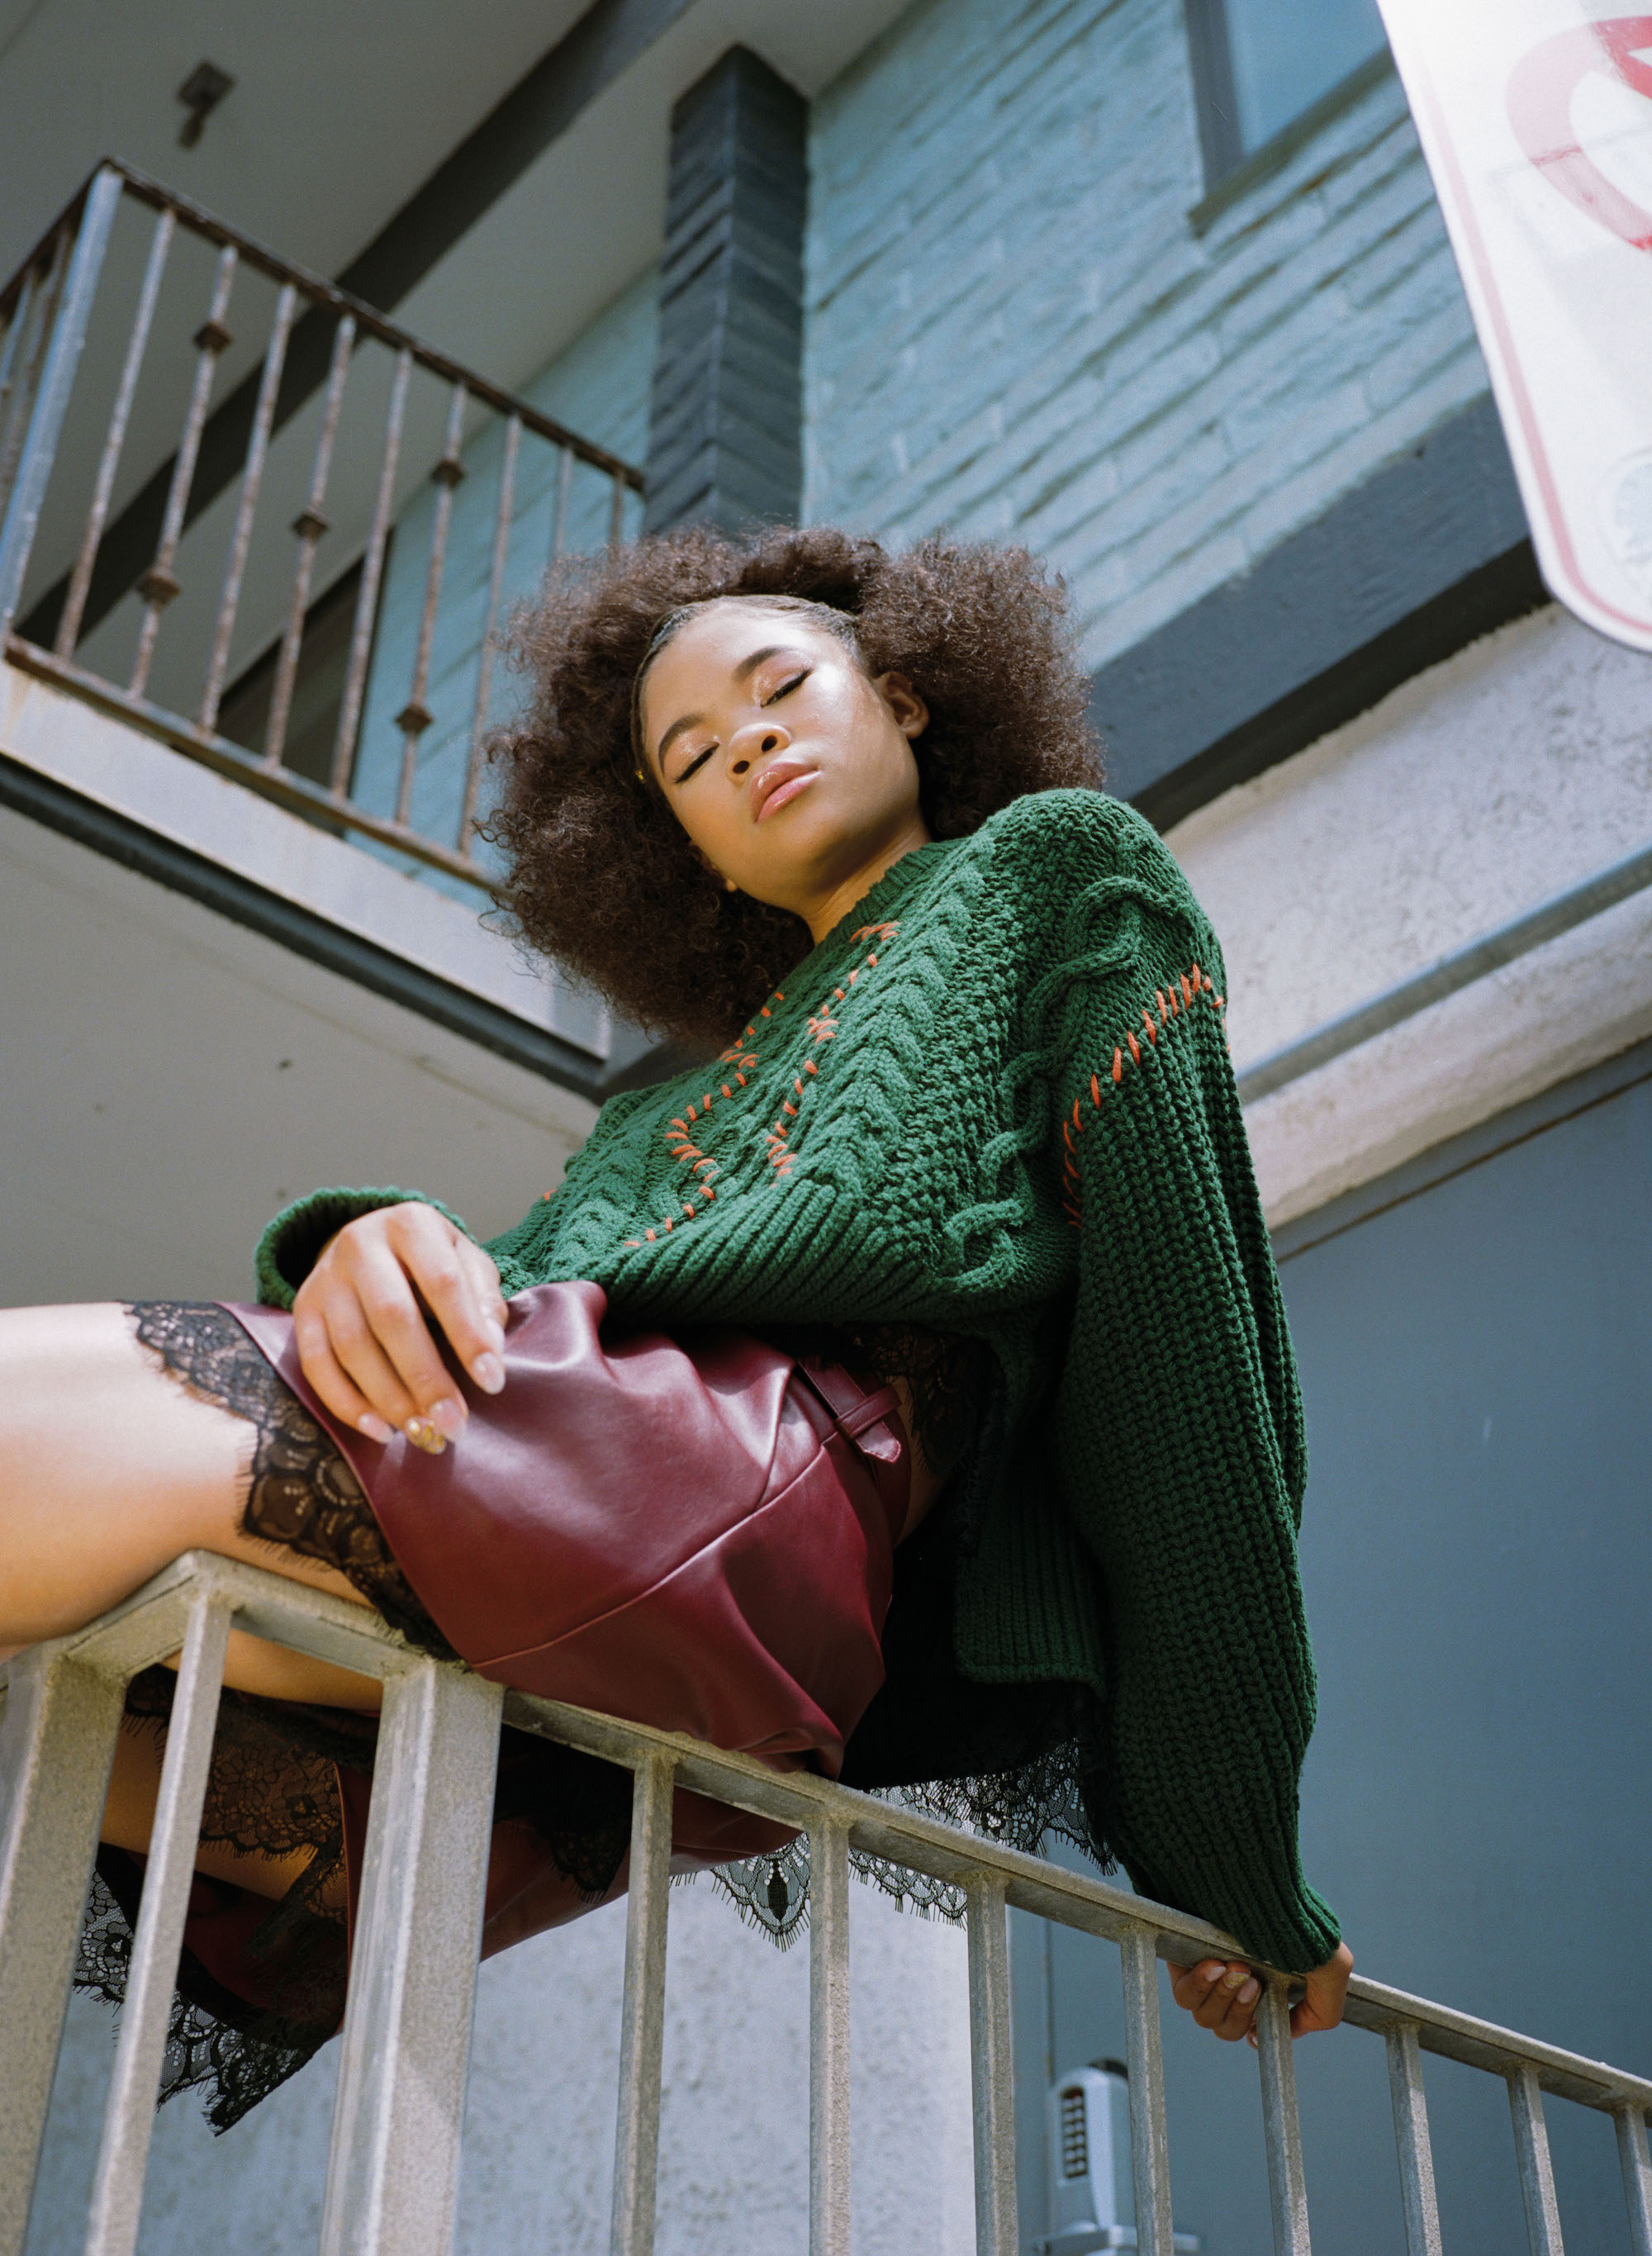 Actress Storm Reid in Summer 19 issue of Wonderland green top